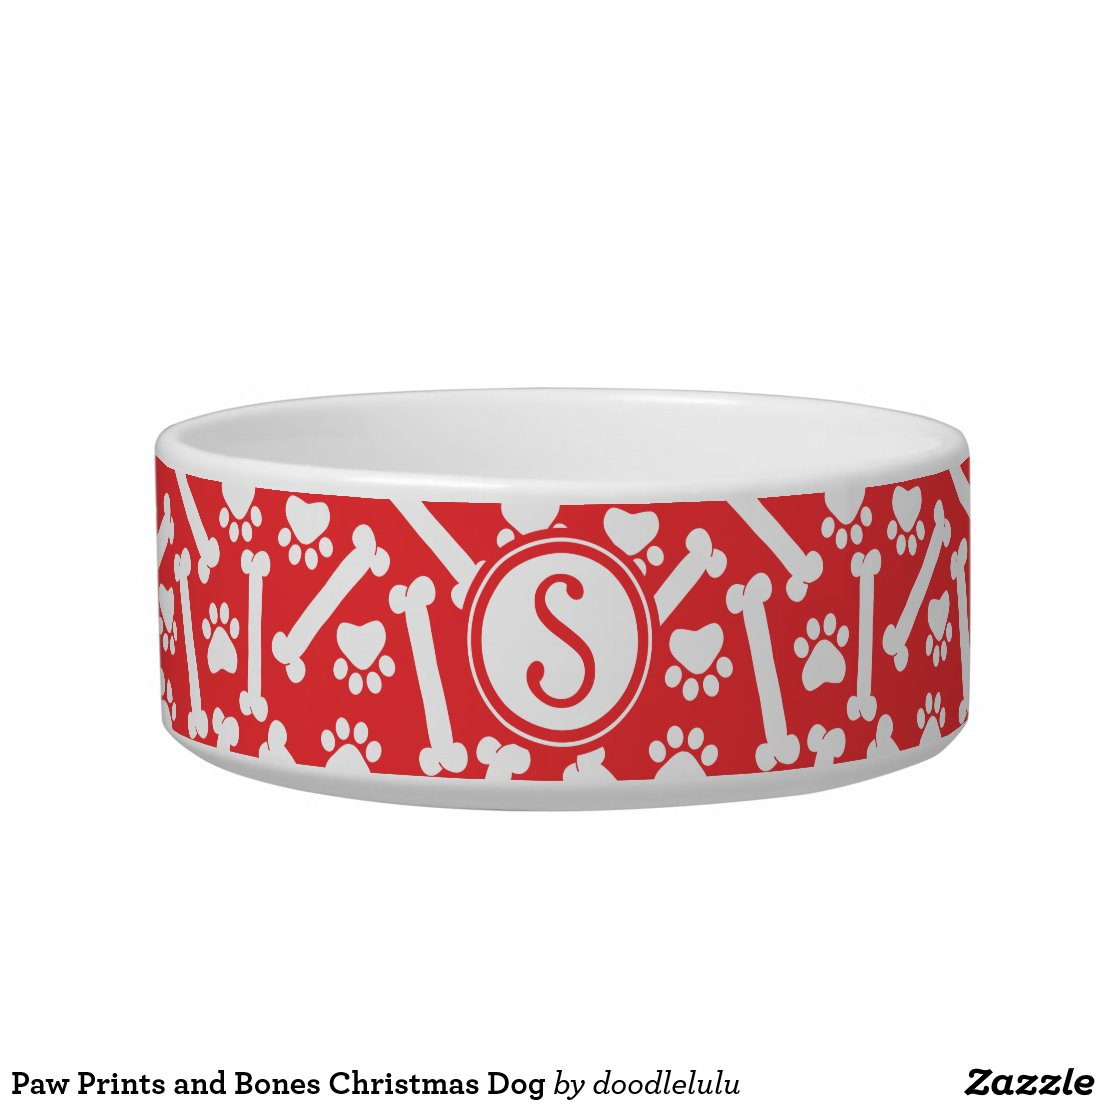 Paw Prints and Bones Christmas Dog Bowl